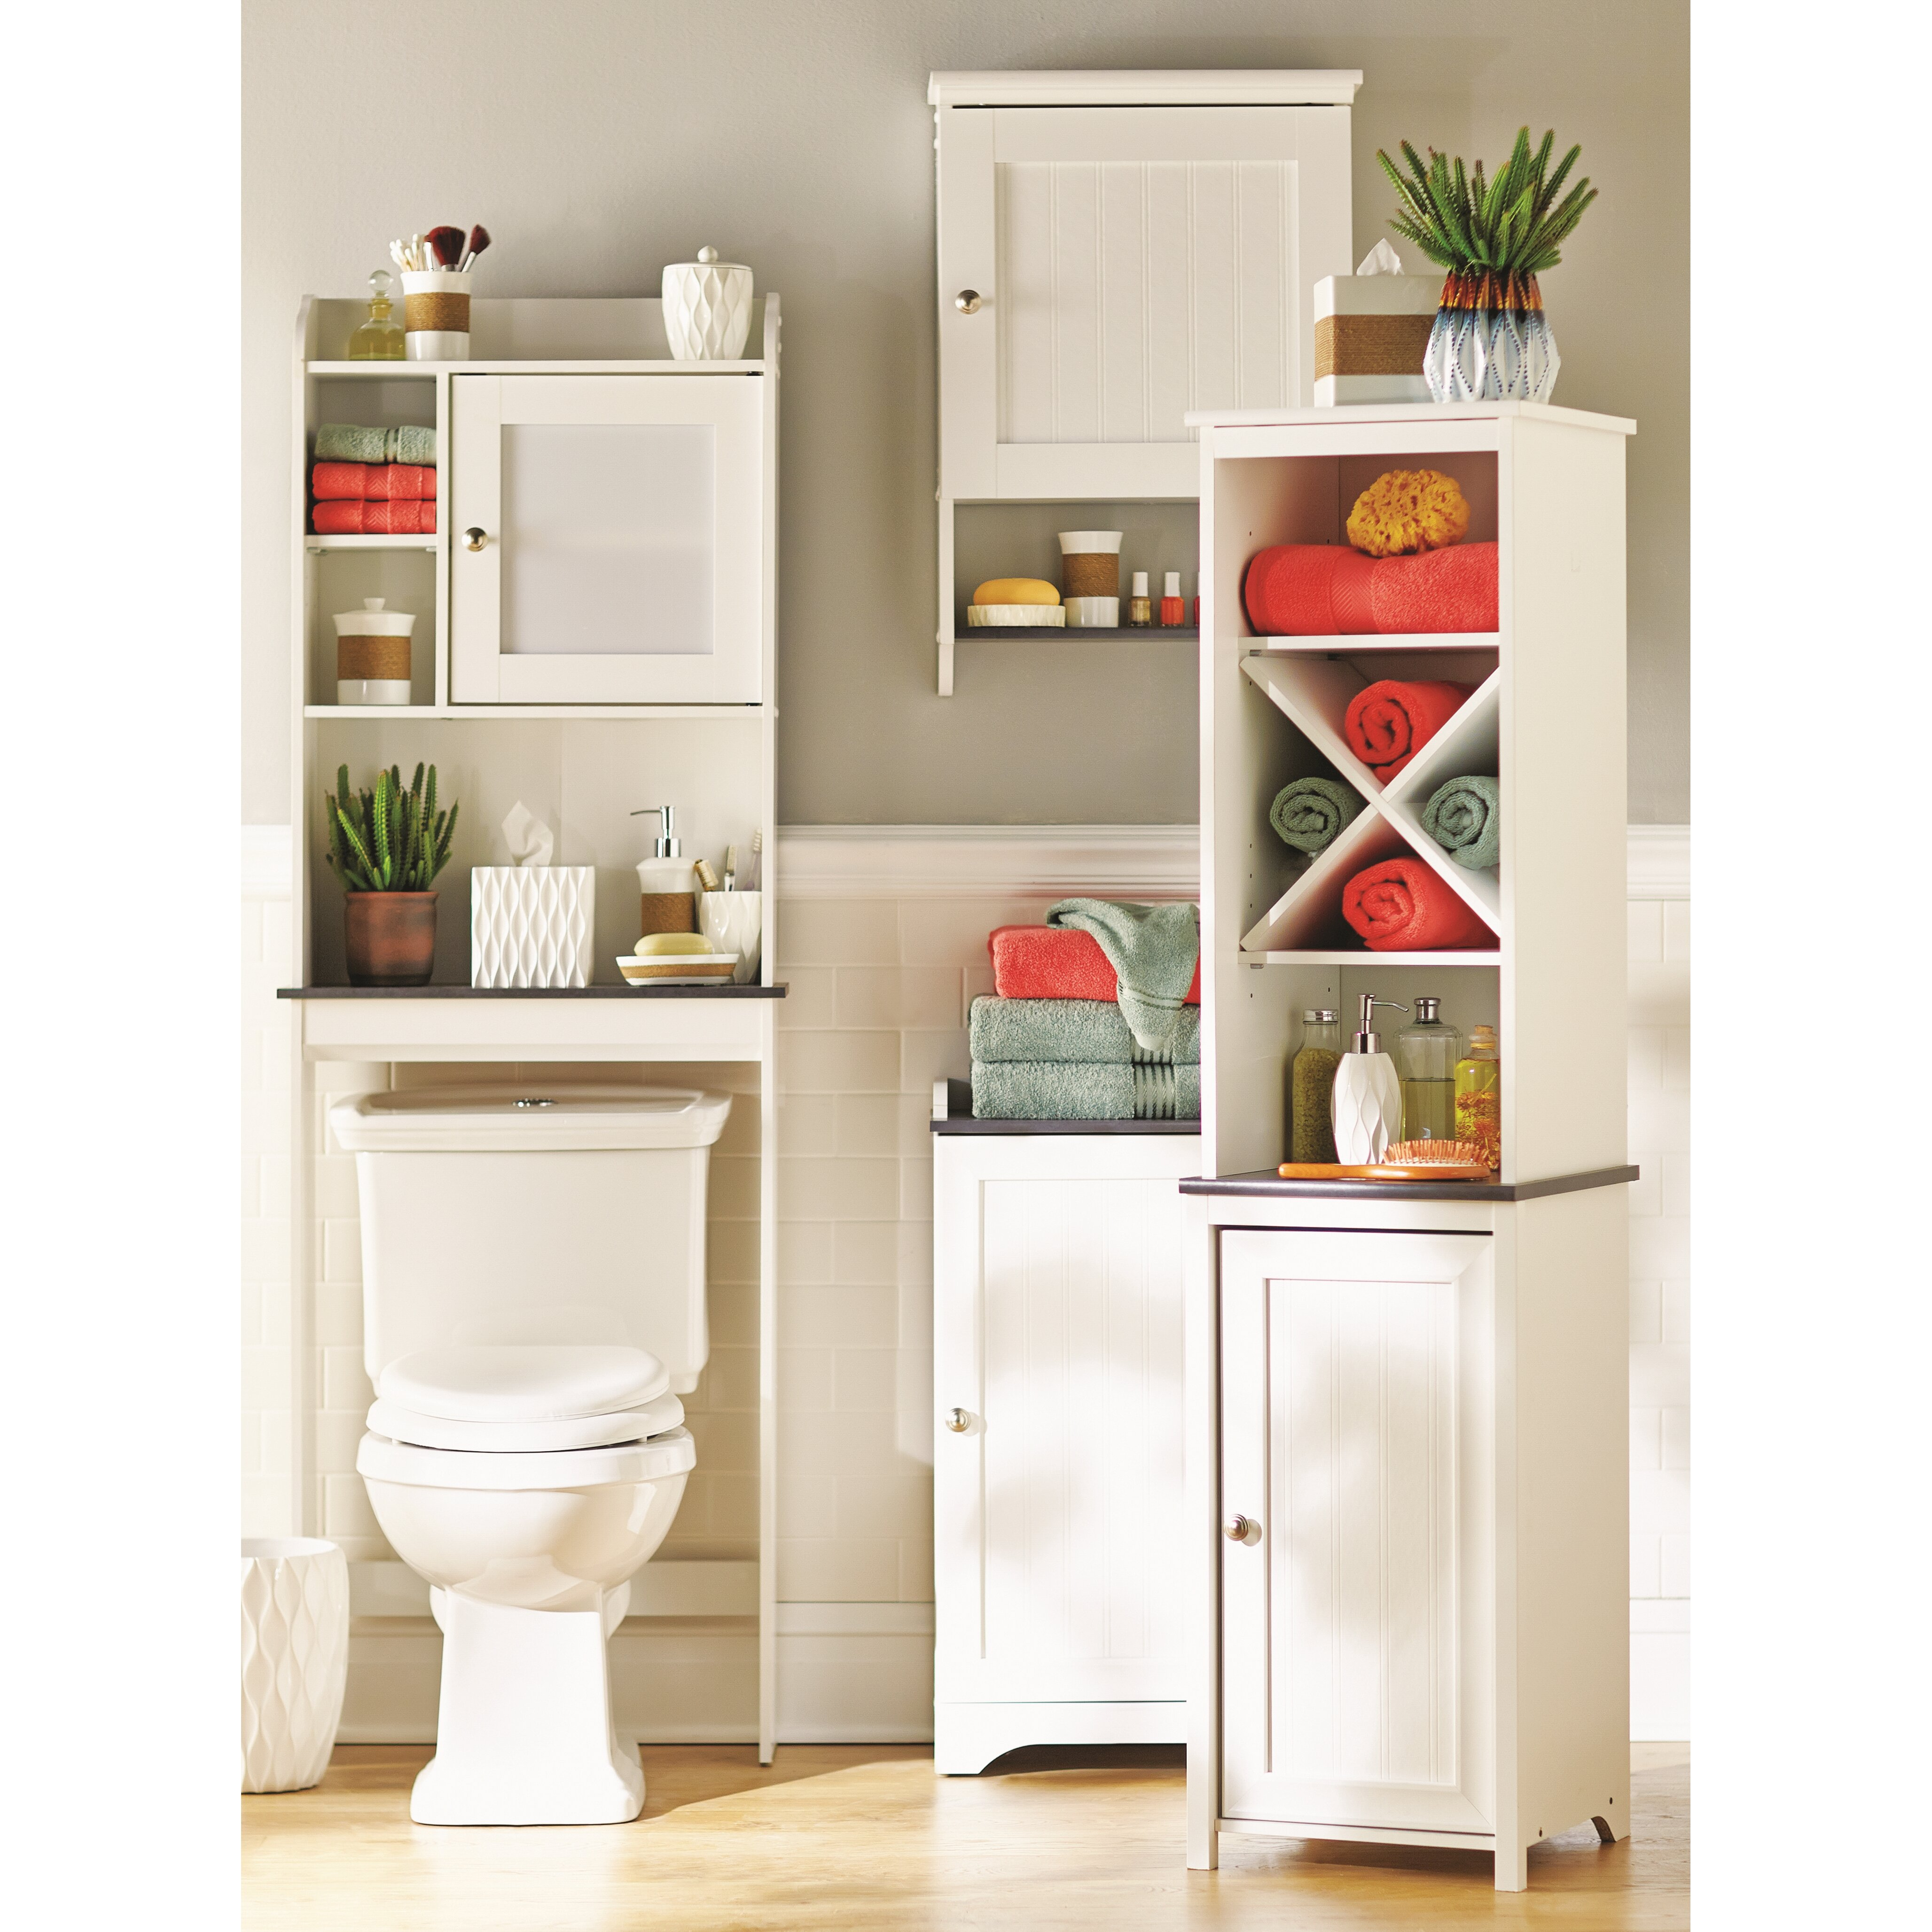 Beachcrest home gulf free standing cabinet reviews wayfair for Free standing cupboards for bathrooms